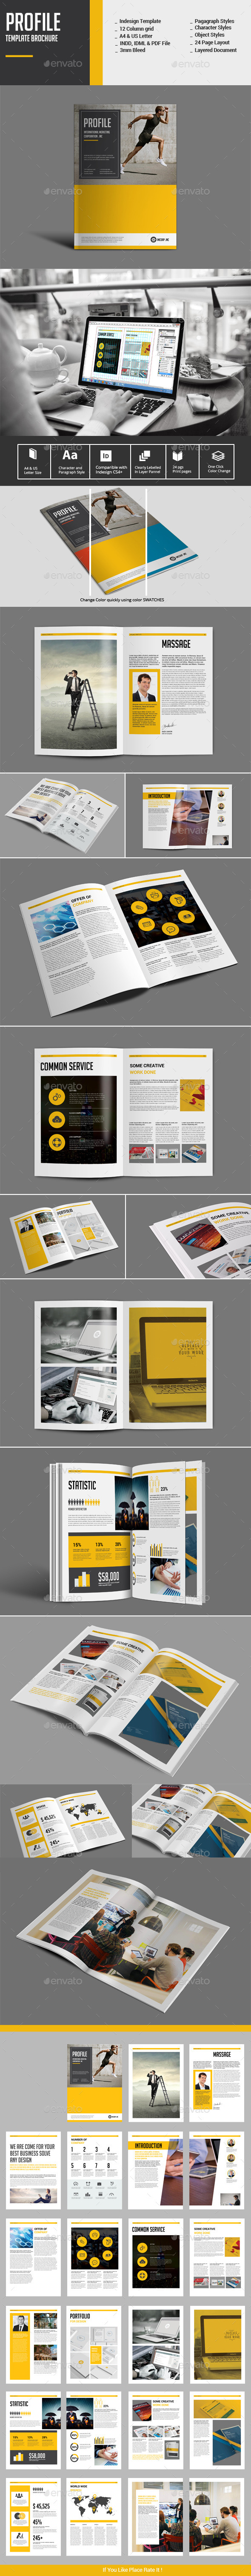 Profile Template Brochure